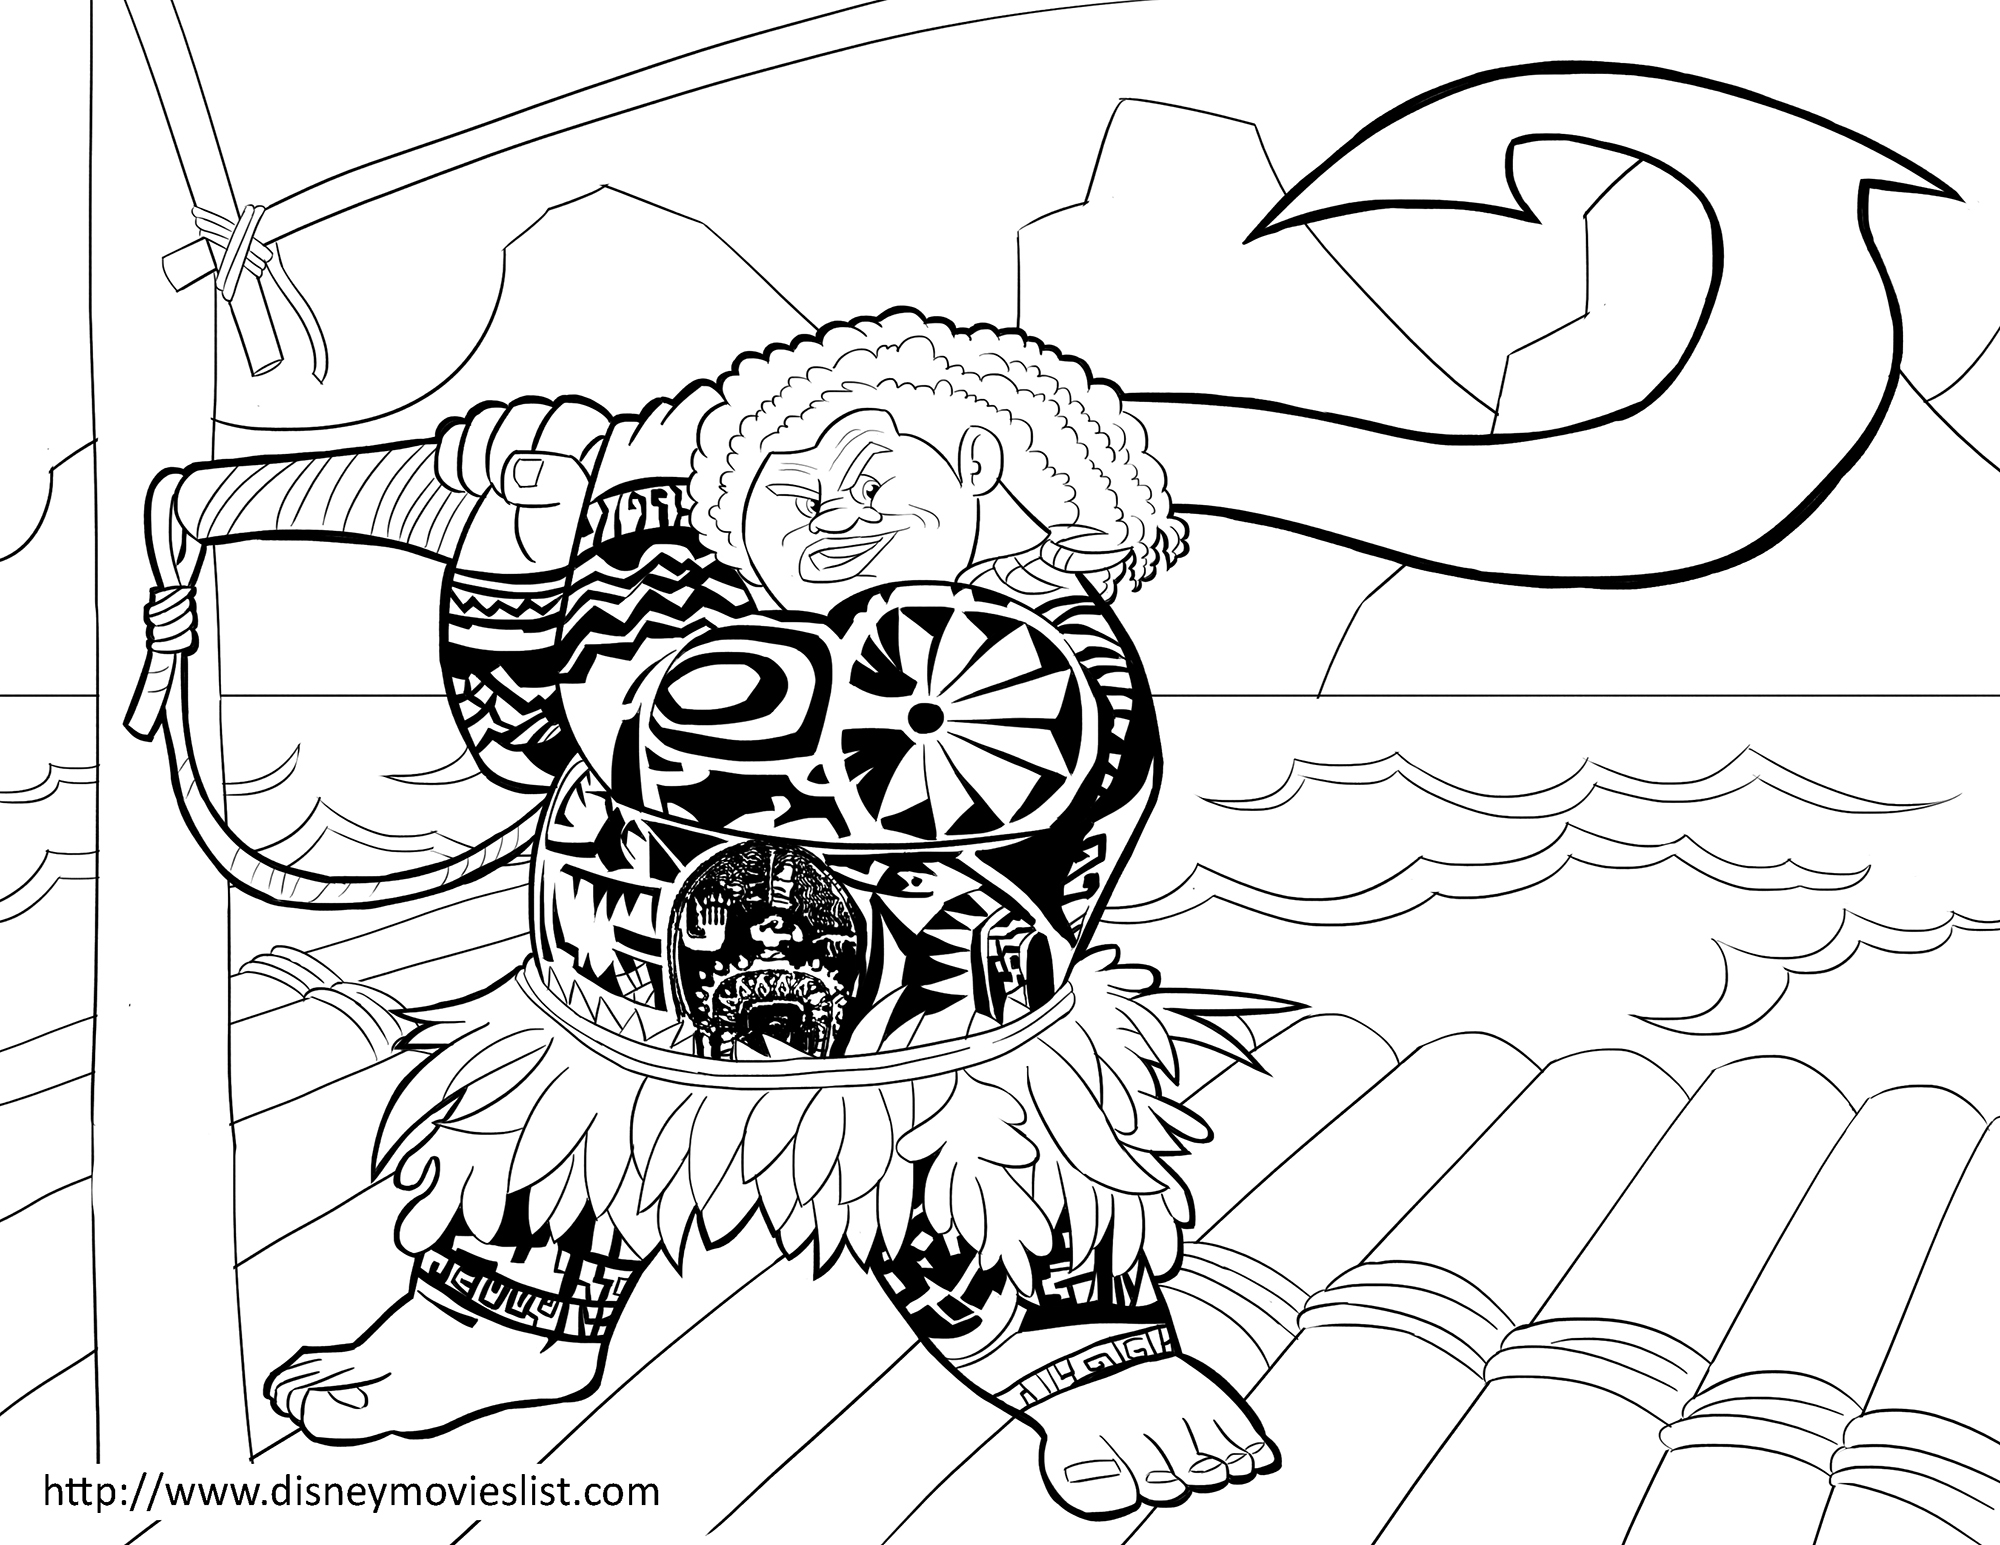 Moana Free To Color For Children Moana Kids Coloring Pages